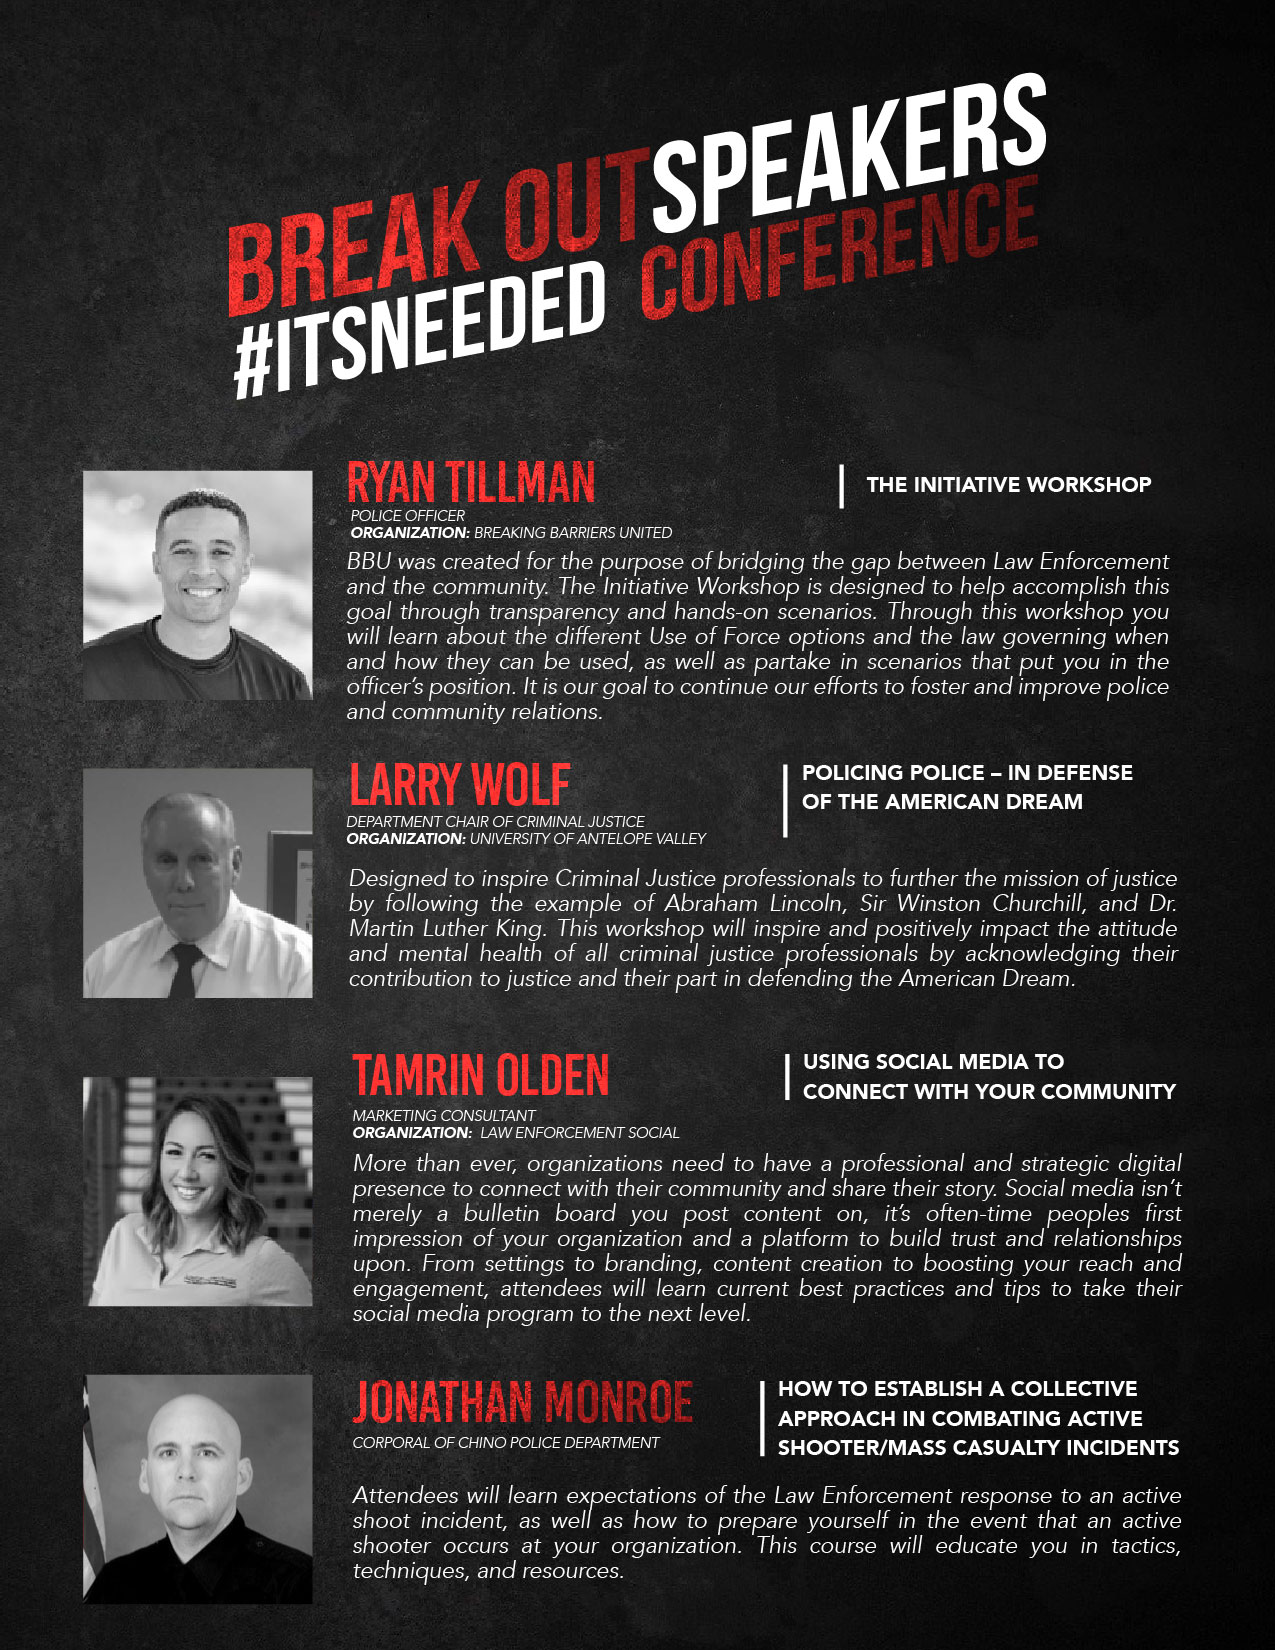 #ITSNEEDED Conference Flyer